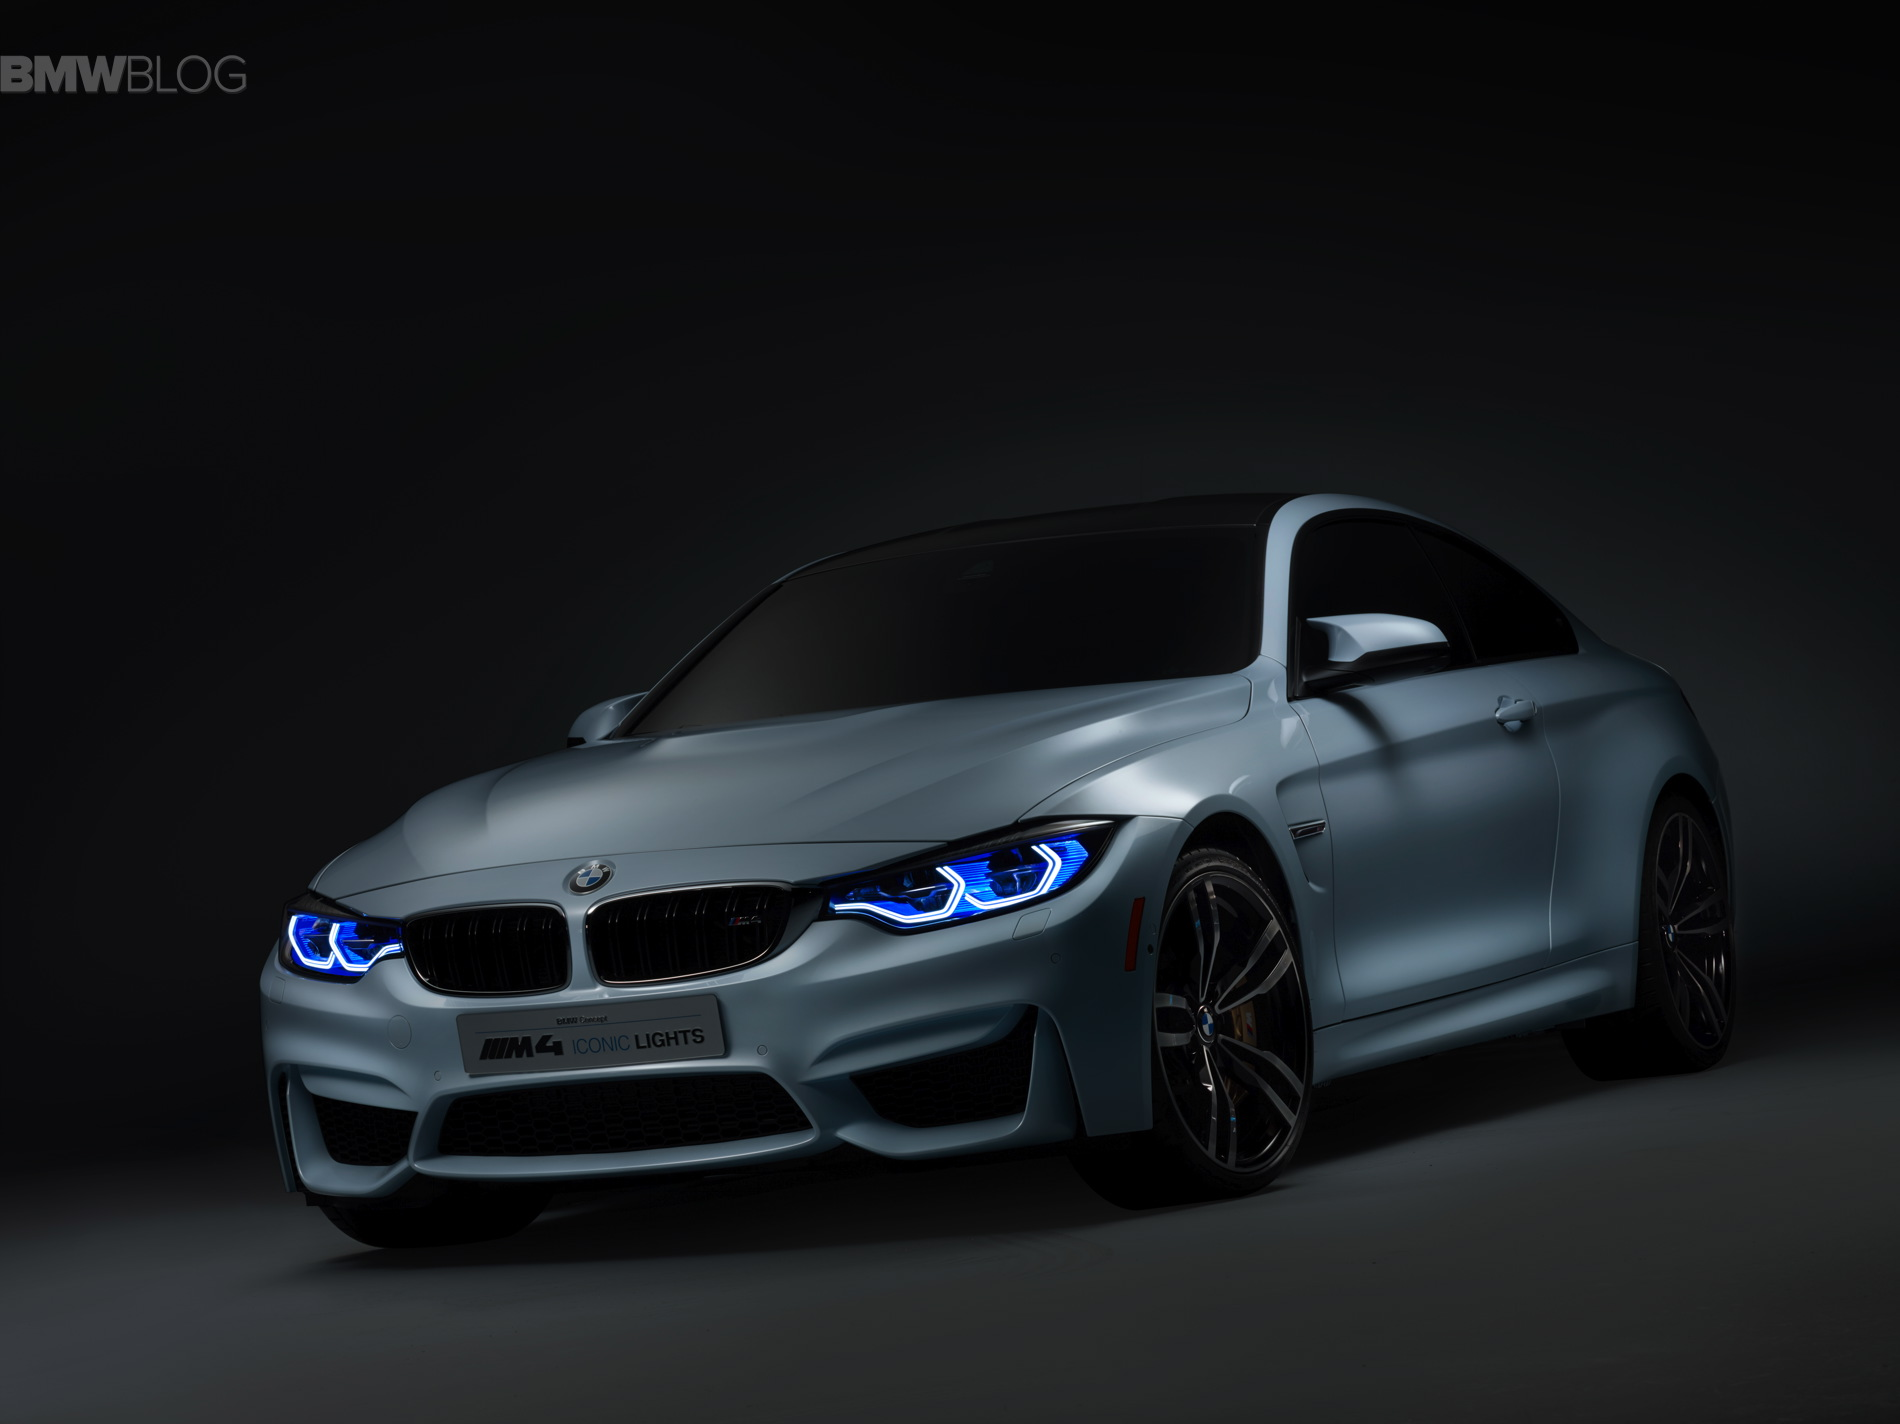 BMW M4 Concept Iconic Lights images 21